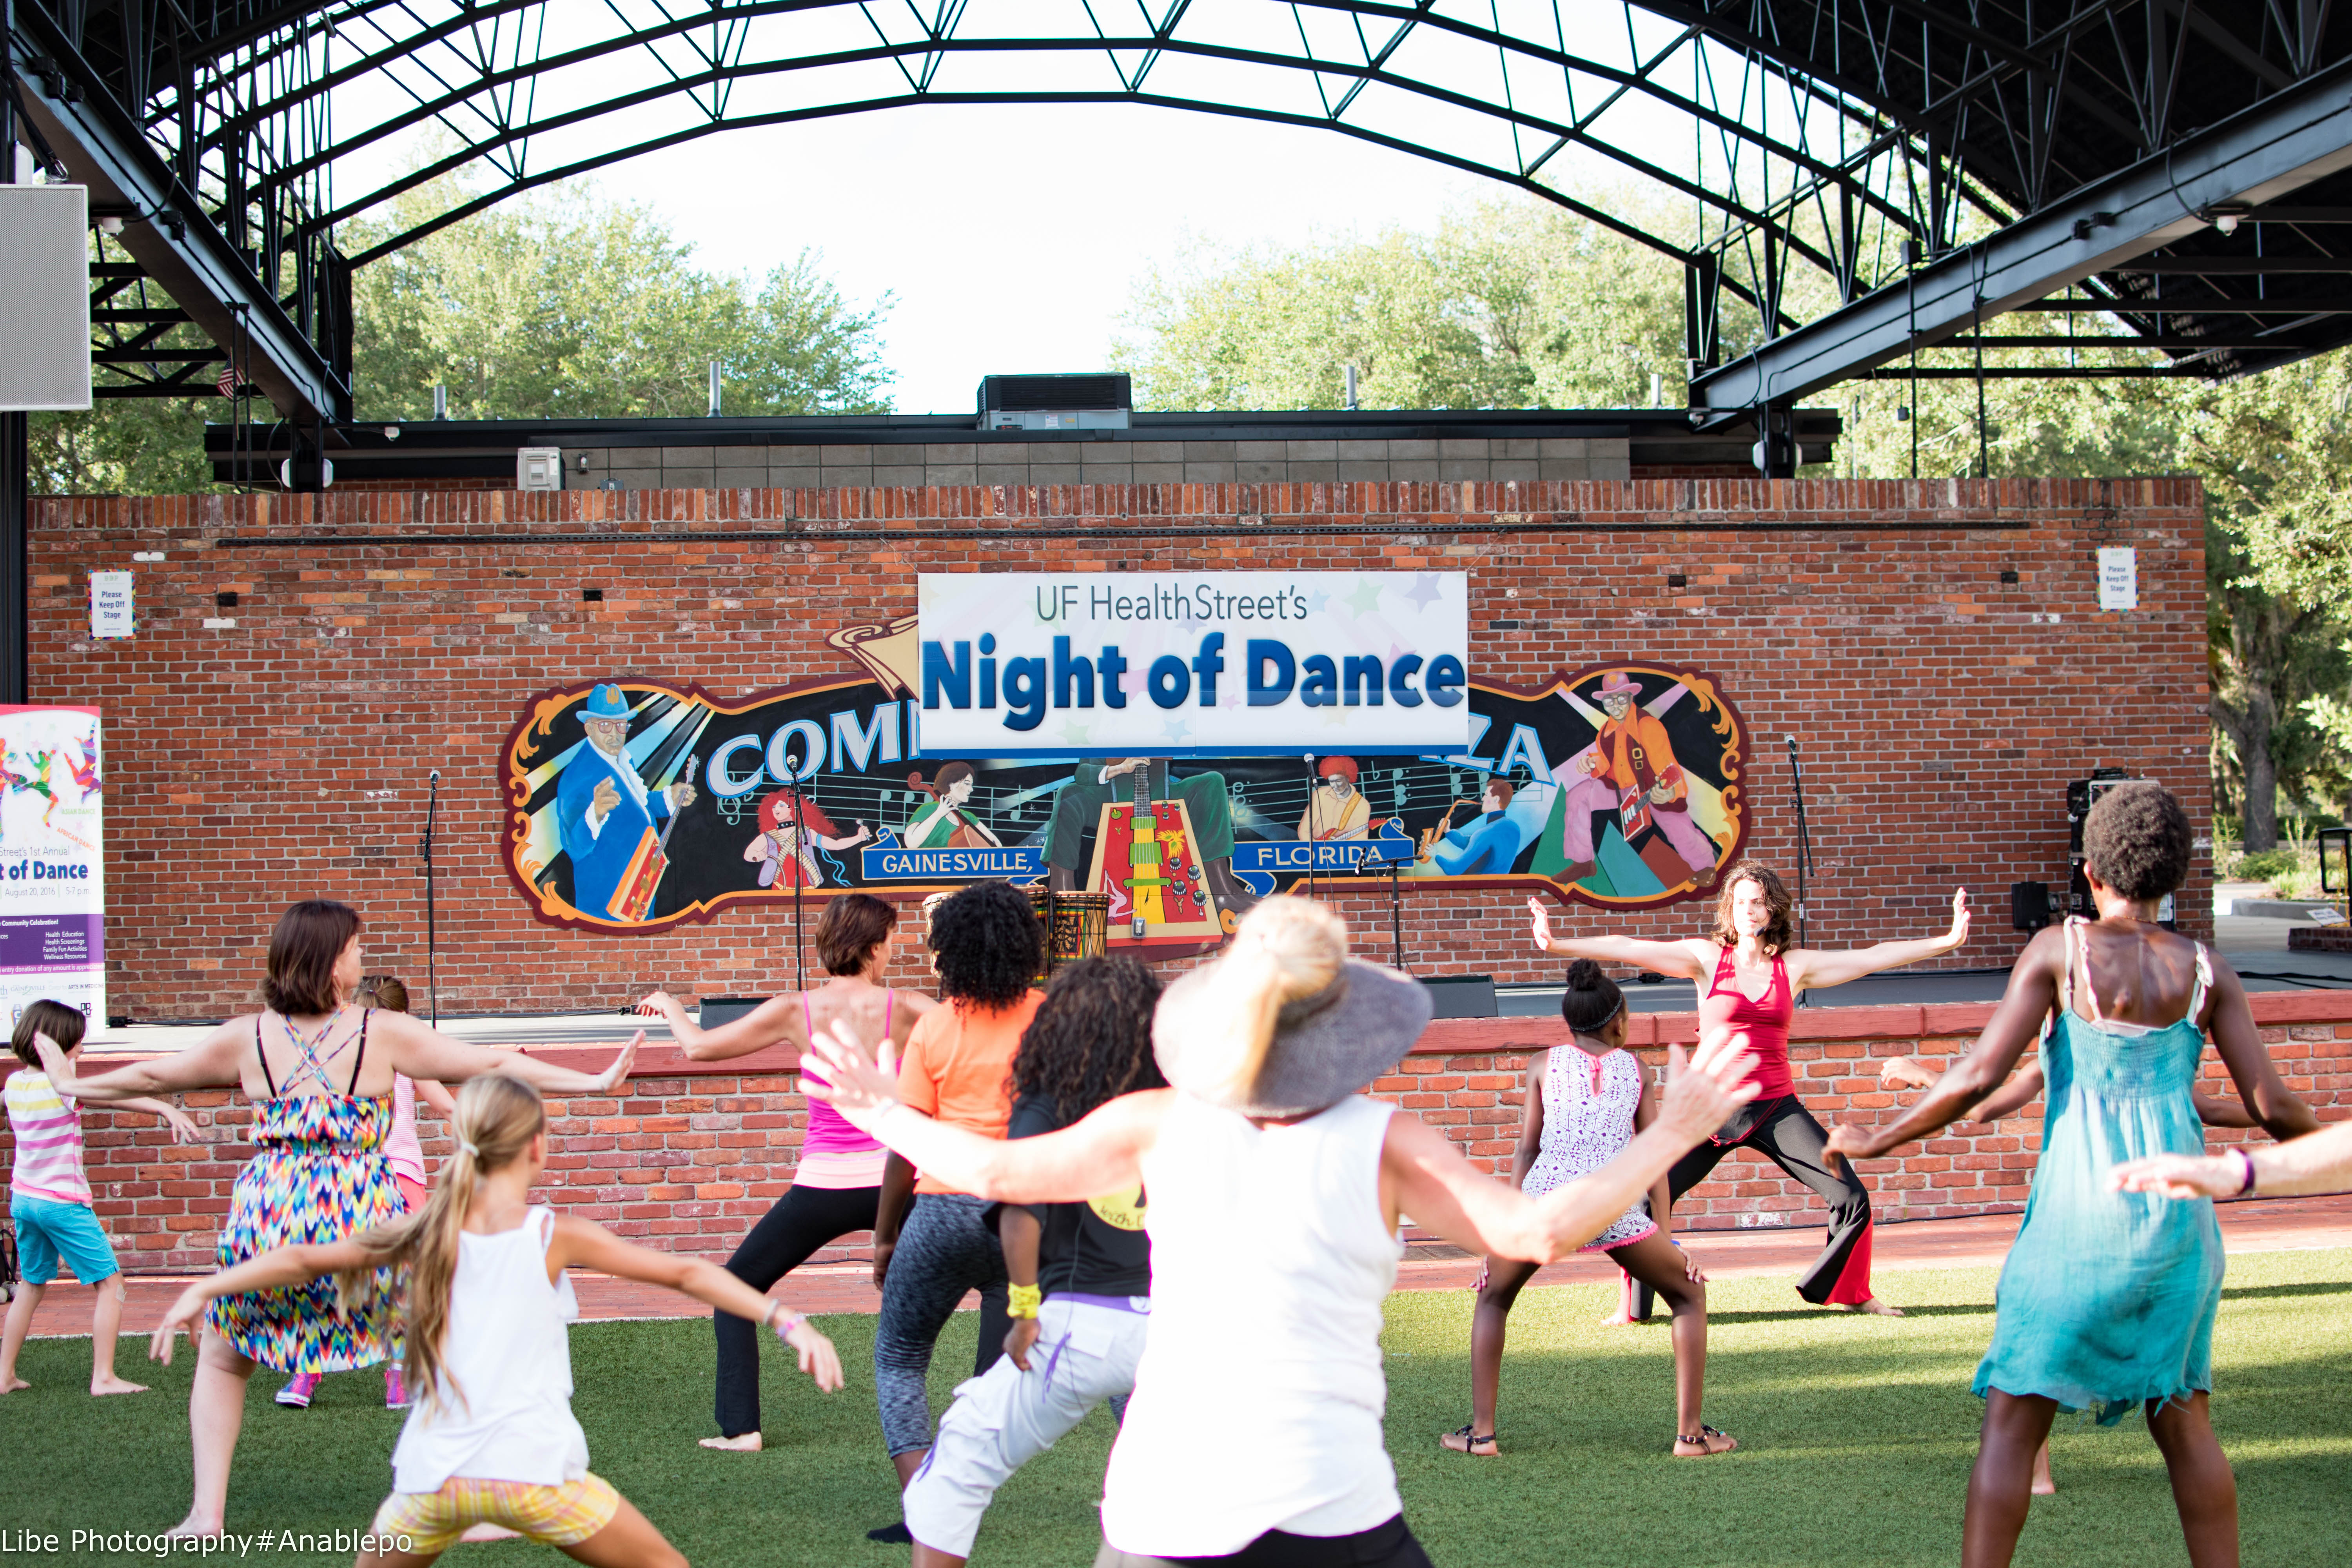 HealthStreet's Night of Dance brings together a cross-section of Gainesville's diverse communities.